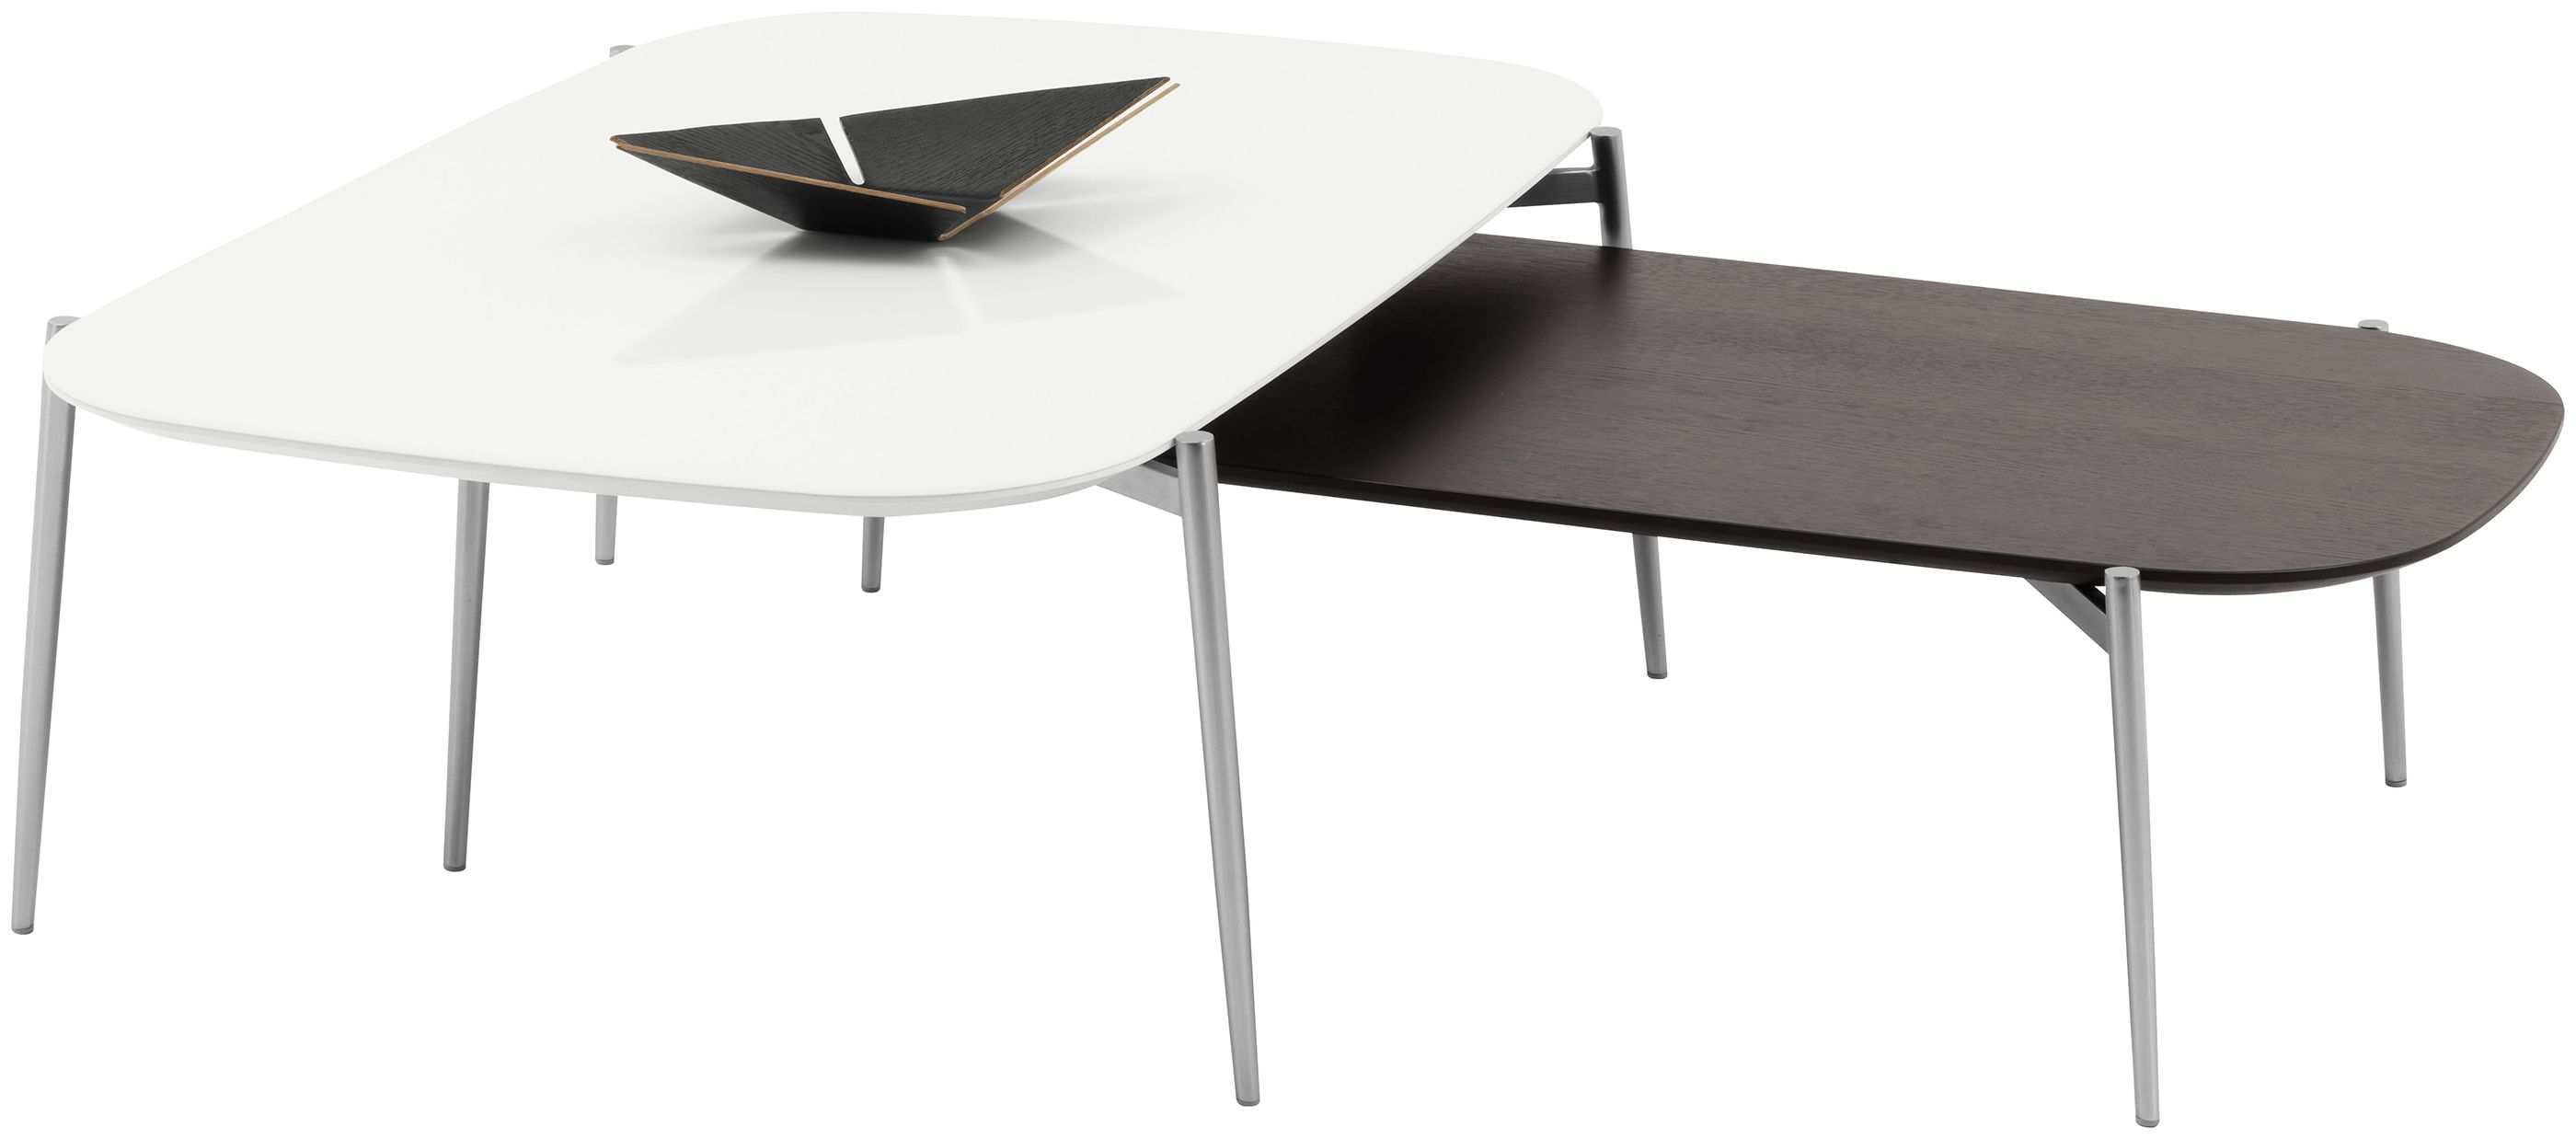 Murcia Coffee Table Available In Different Sizes And Colors As Shown White Glass Brushed Steel Coffee Table Modern Coffee Tables Contemporary Coffee Table [ 1238 x 2800 Pixel ]